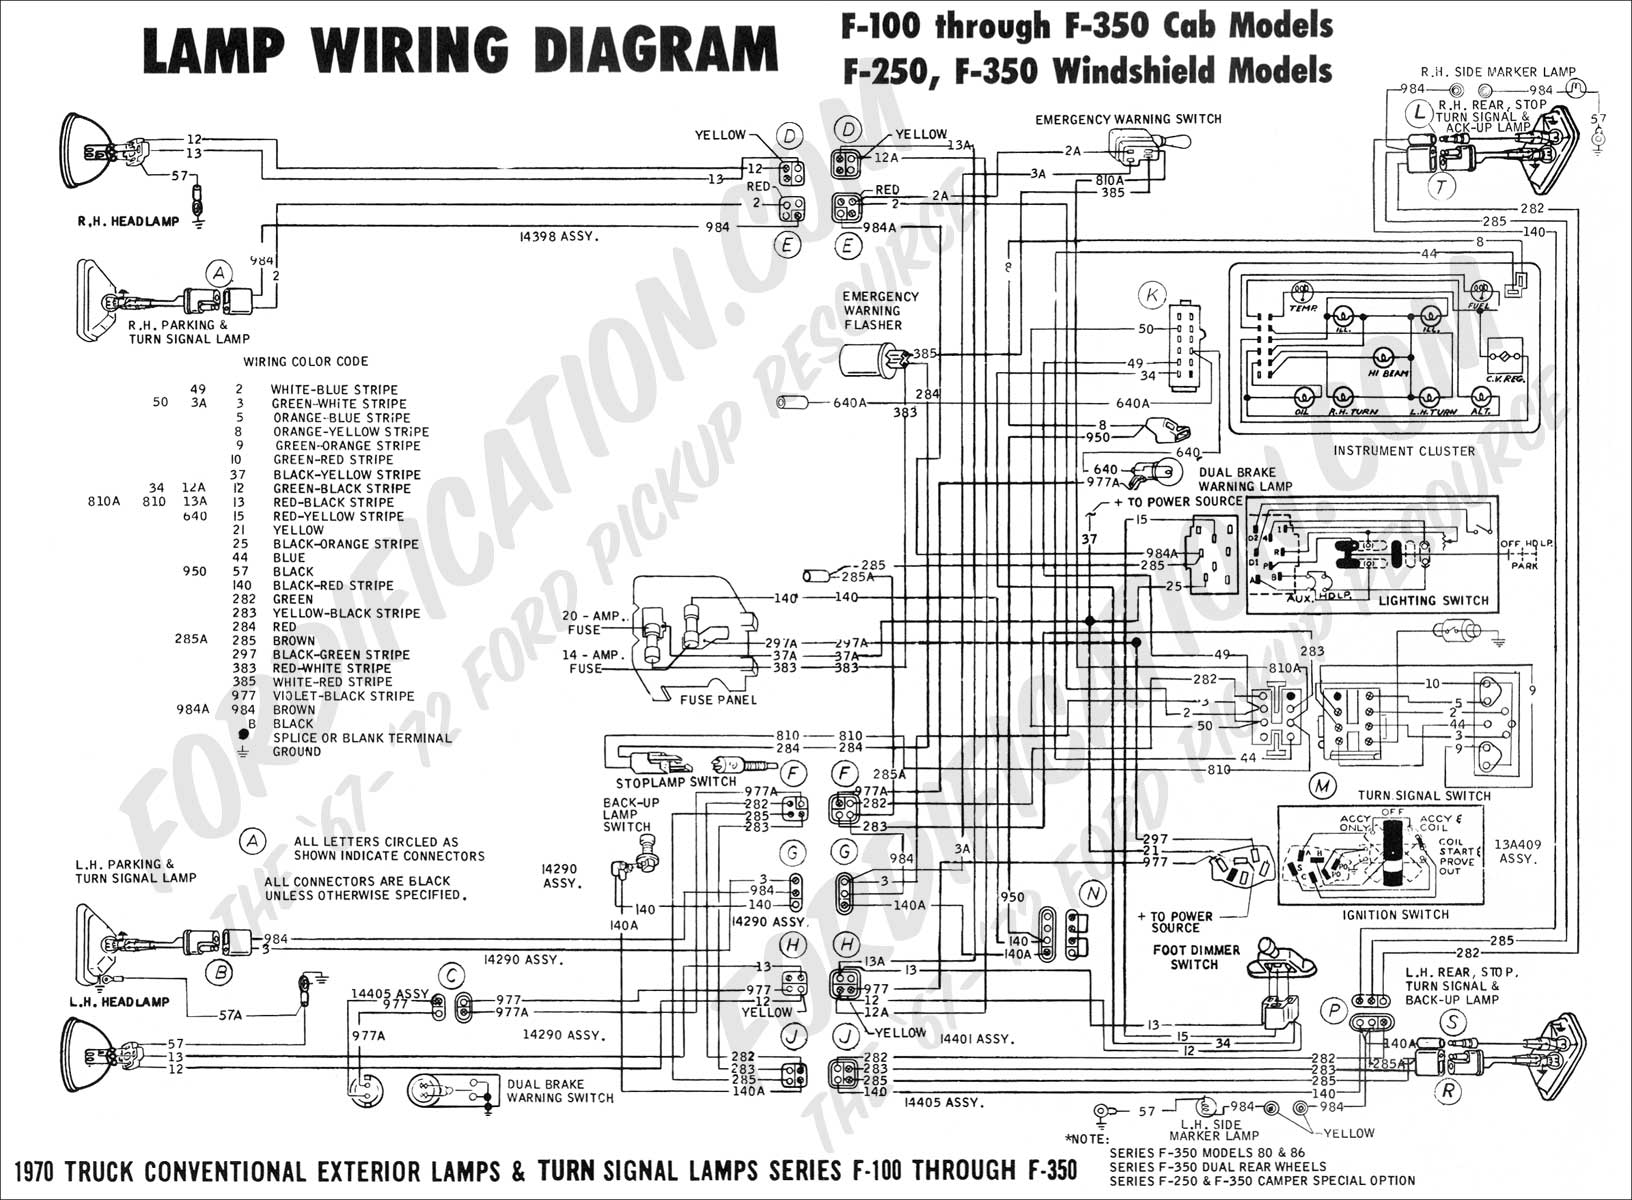 ford f150 headlight wiring diagram wiring diagrams schematic2006 ford f 150 wiring diagram free 13 2 cryptopotato co \\u2022 dodge ram headlight wiring diagram ford f150 headlight wiring diagram